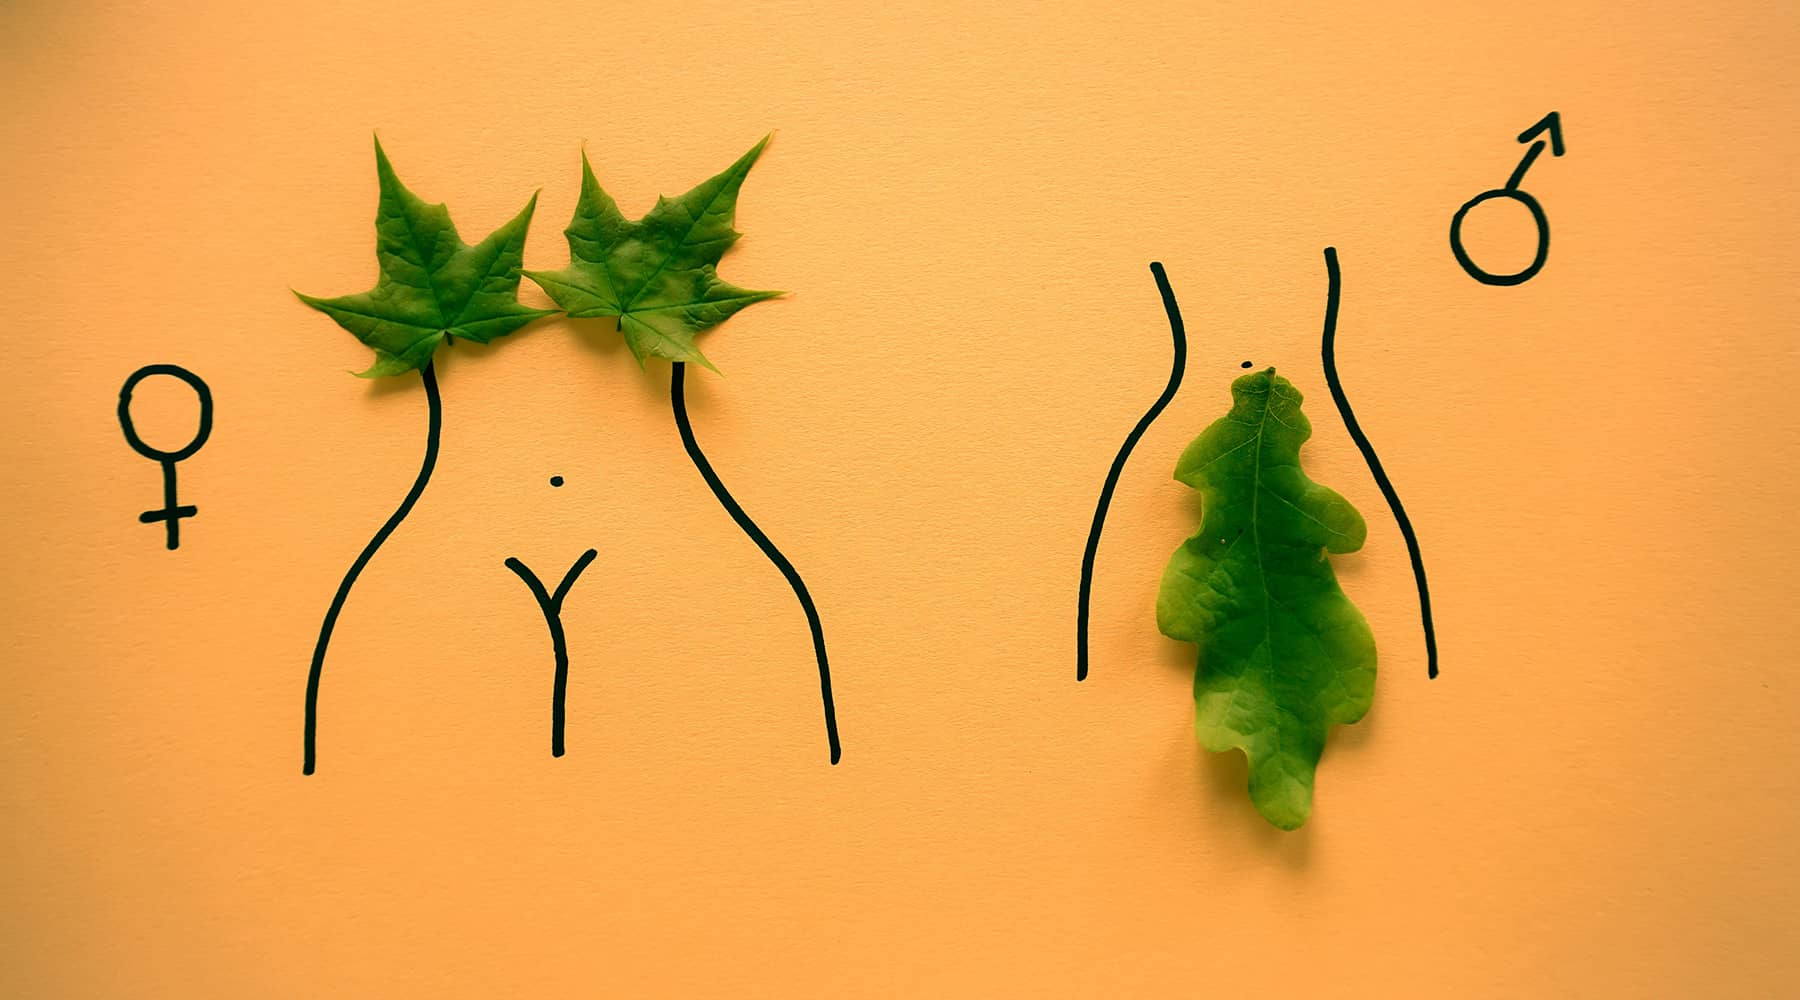 Green leaves cover male and female genitalia on an orange color background